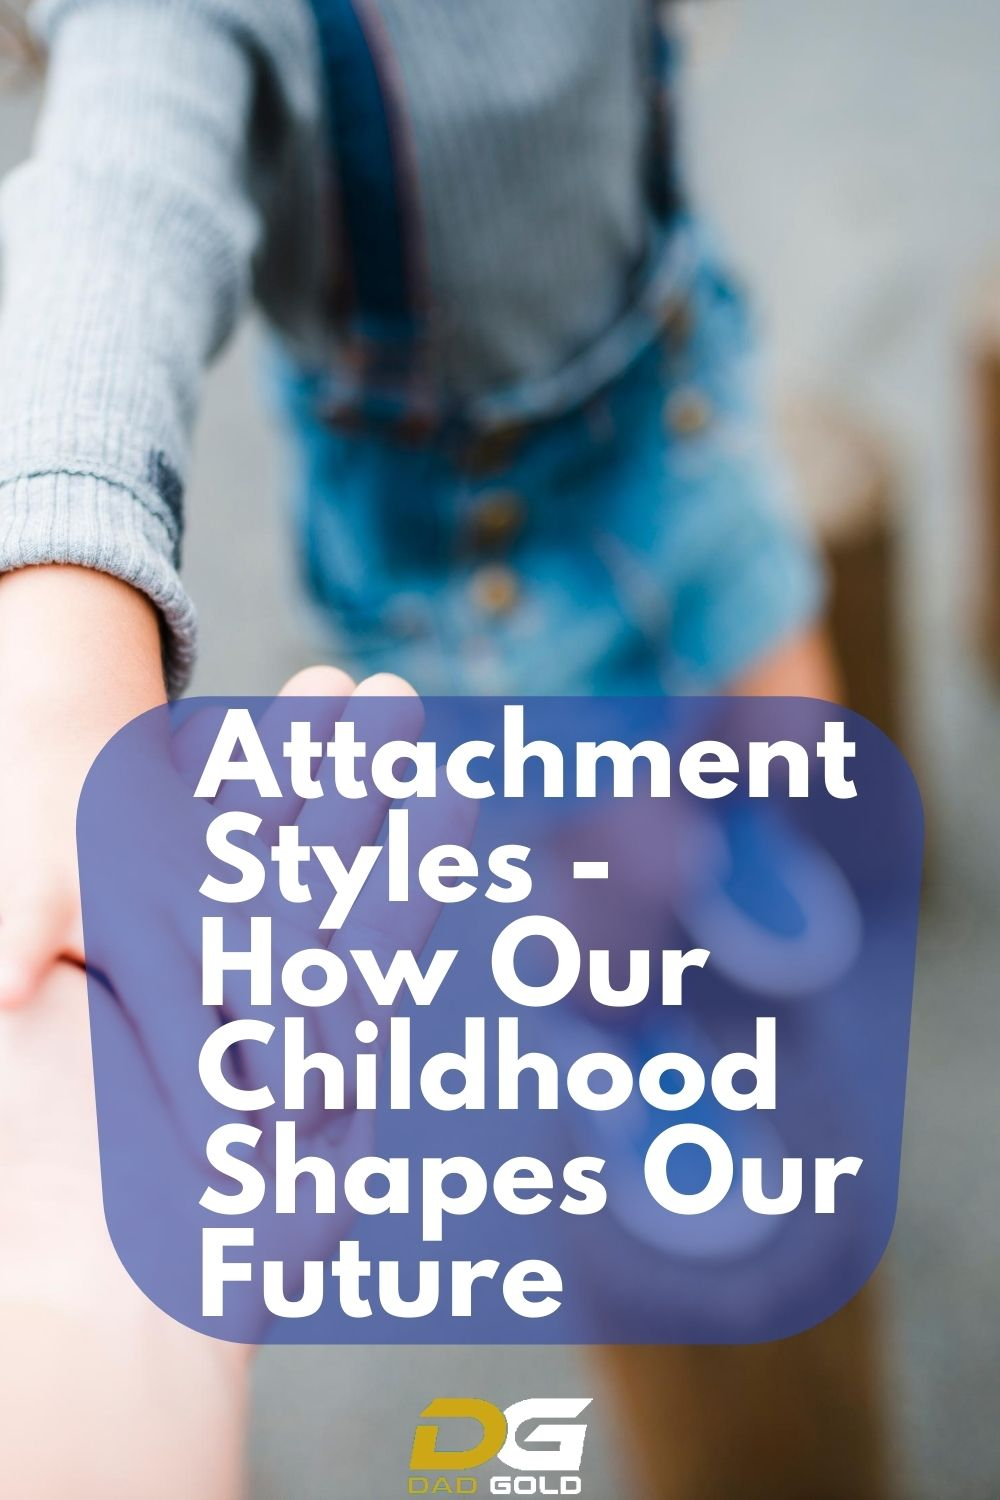 Attachment Styles - How Our Childhood Shapes Our Future